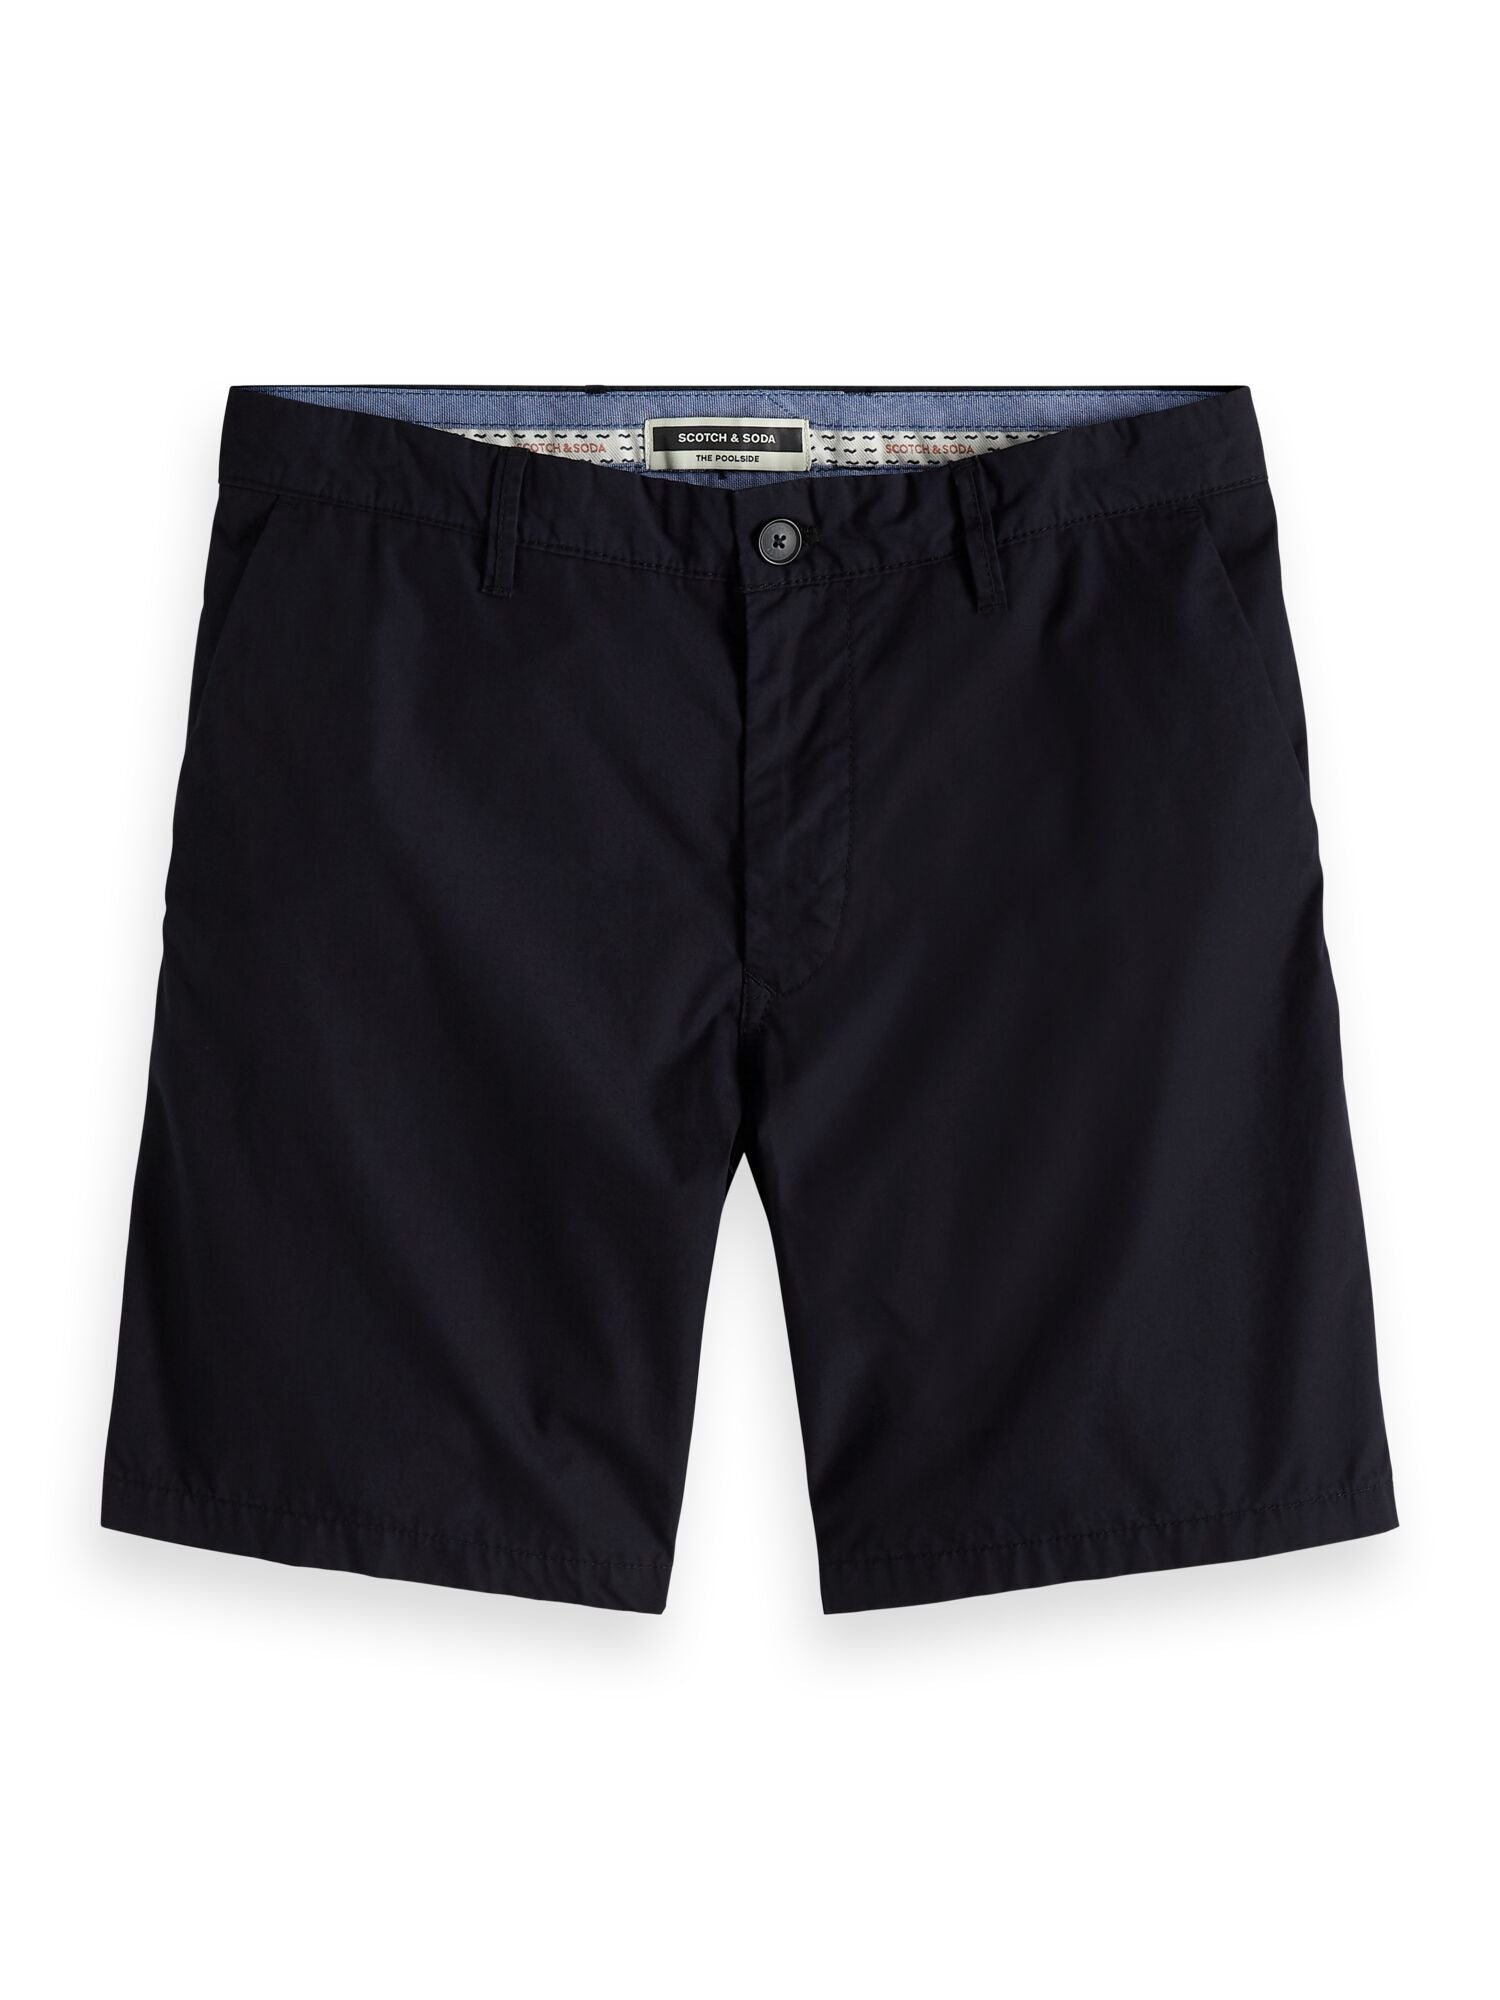 Scotch & Soda Classic Chino Short - 2 Colours